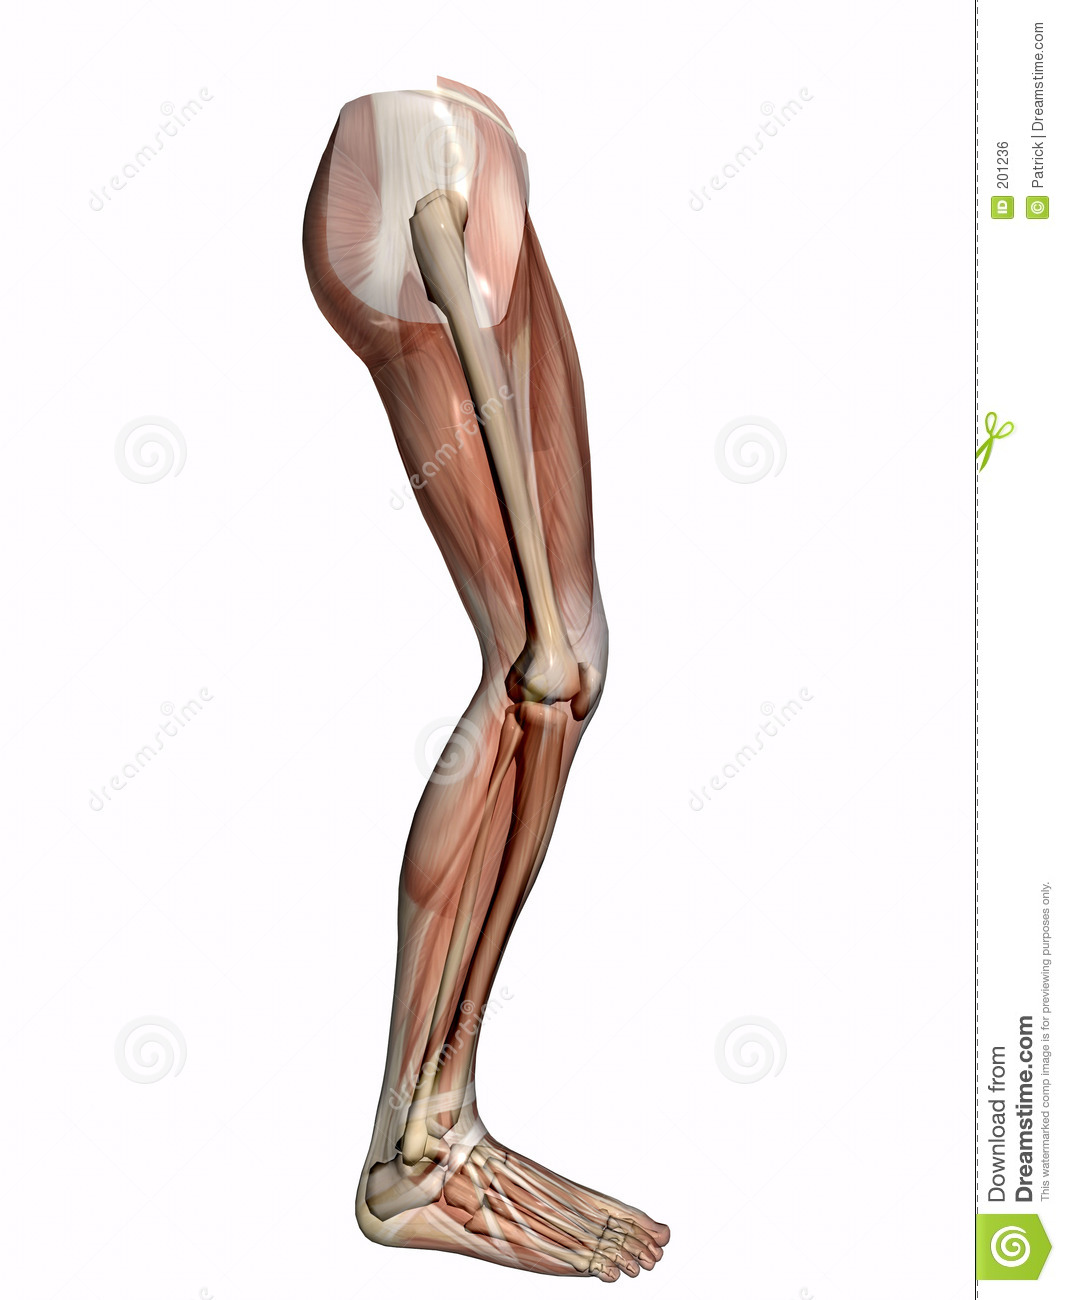 Anatomy leg skeleton transparent